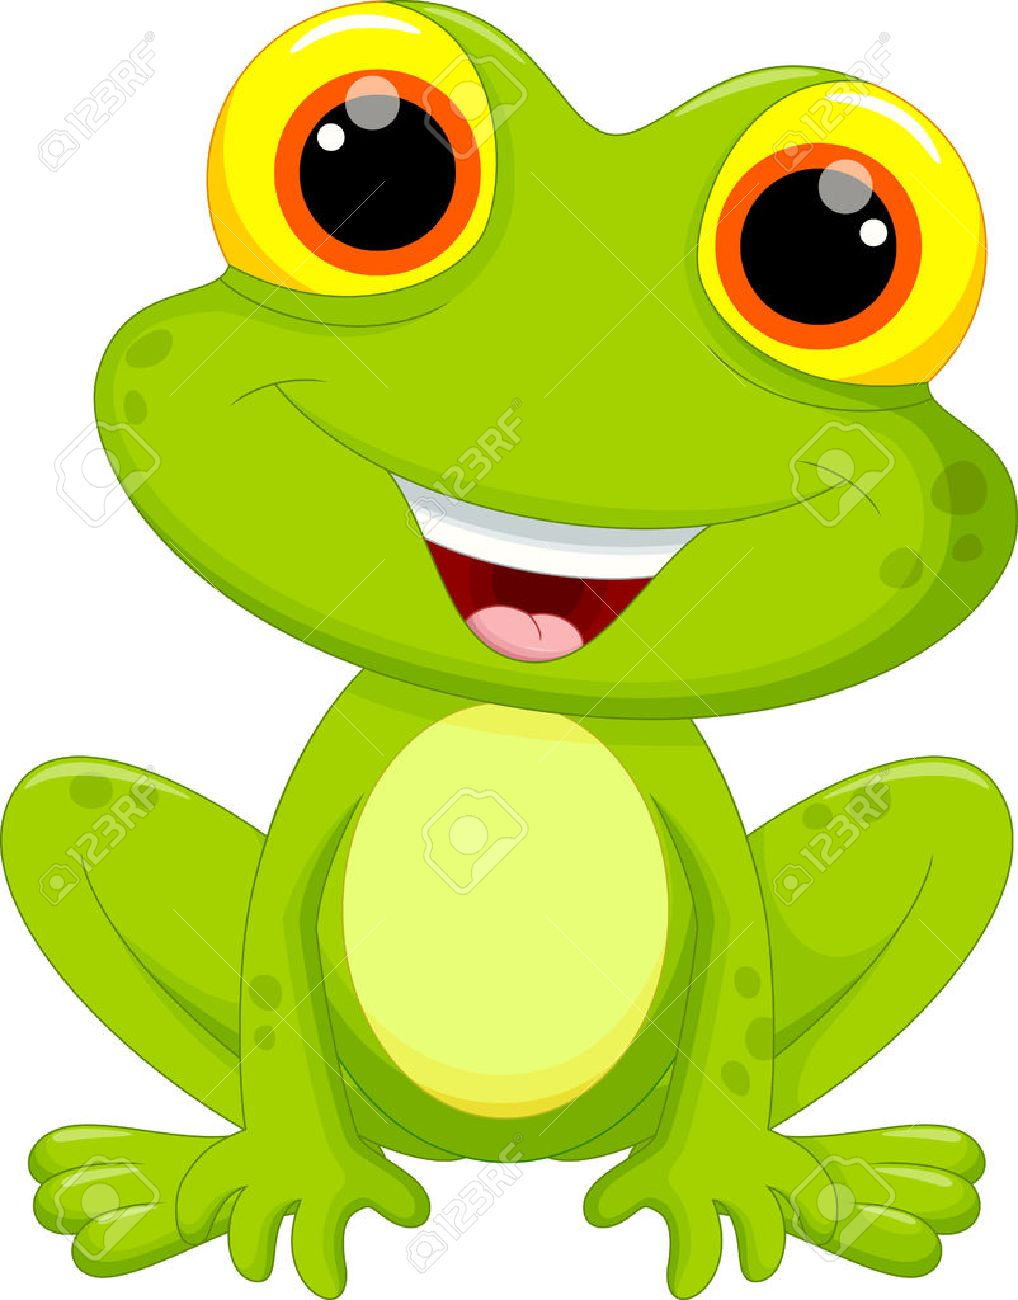 Frog Stock Photos. Royalty Free Frog Images